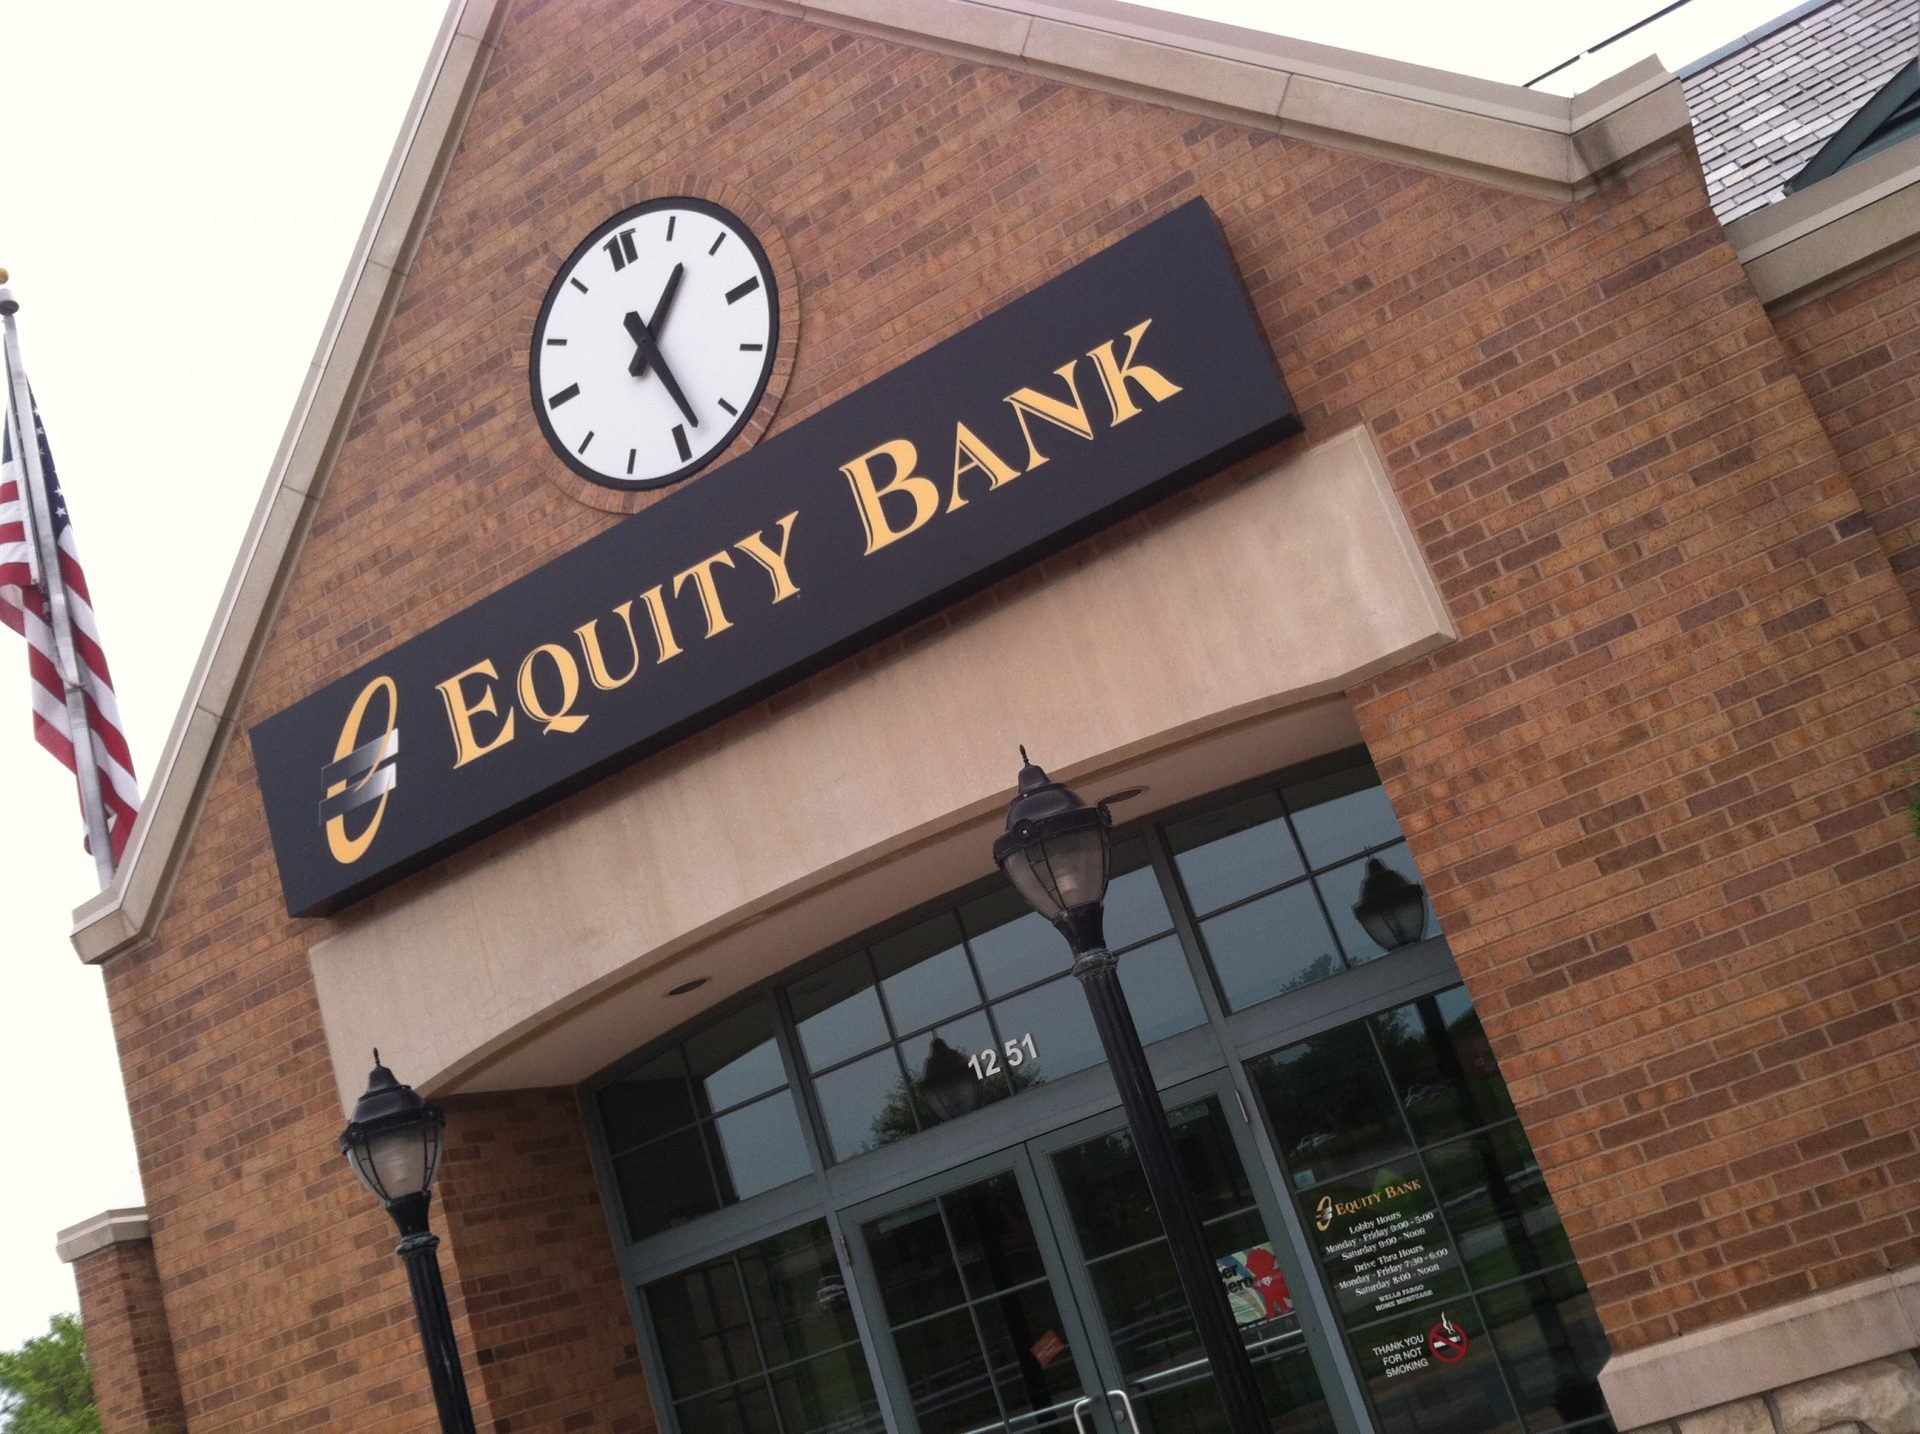 Equity Bank Lee's Summit West branch exterior.